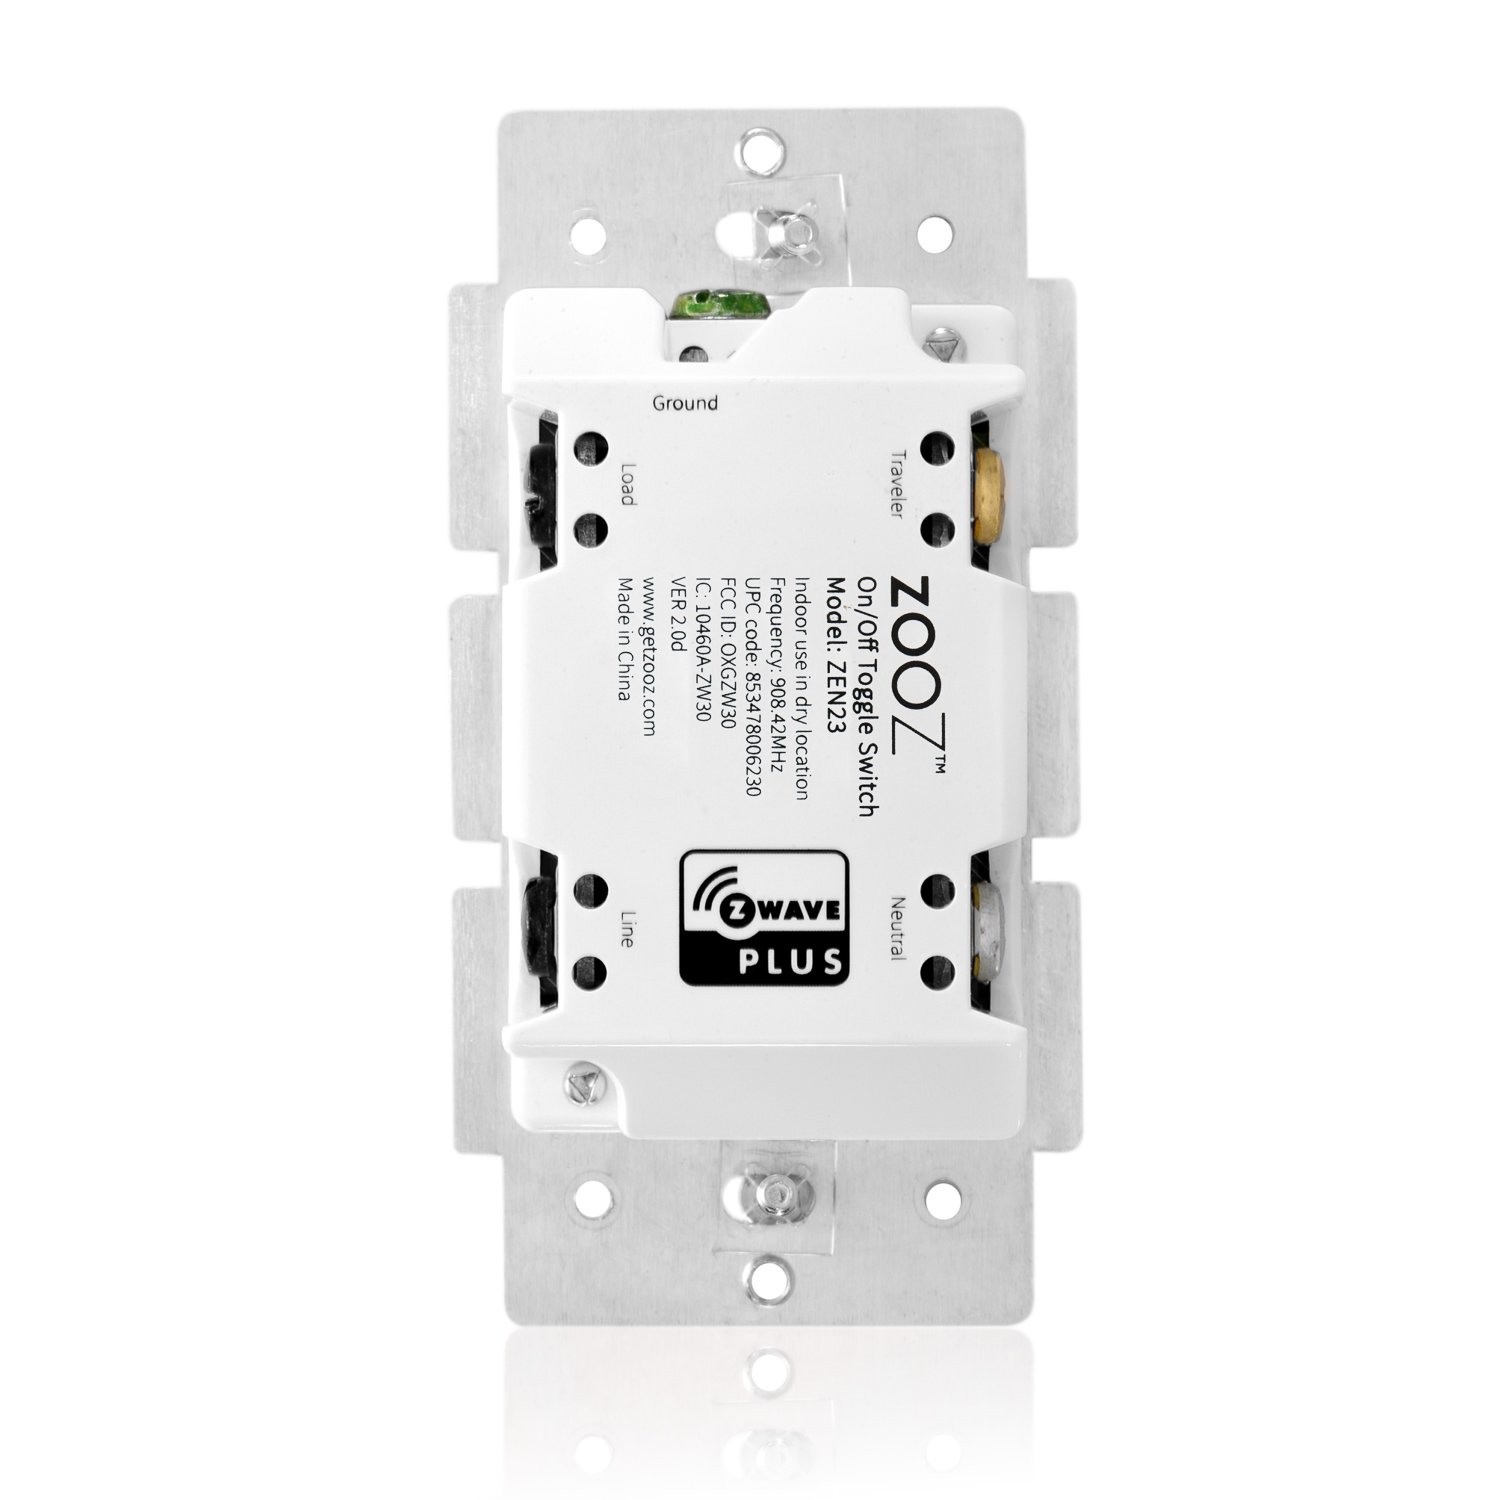 How to Wire A Traveller Wireless Remote Kb 8657] Remote toggle Switch Circuit Wiring Diagram Of How to Wire A Traveller Wireless Remote